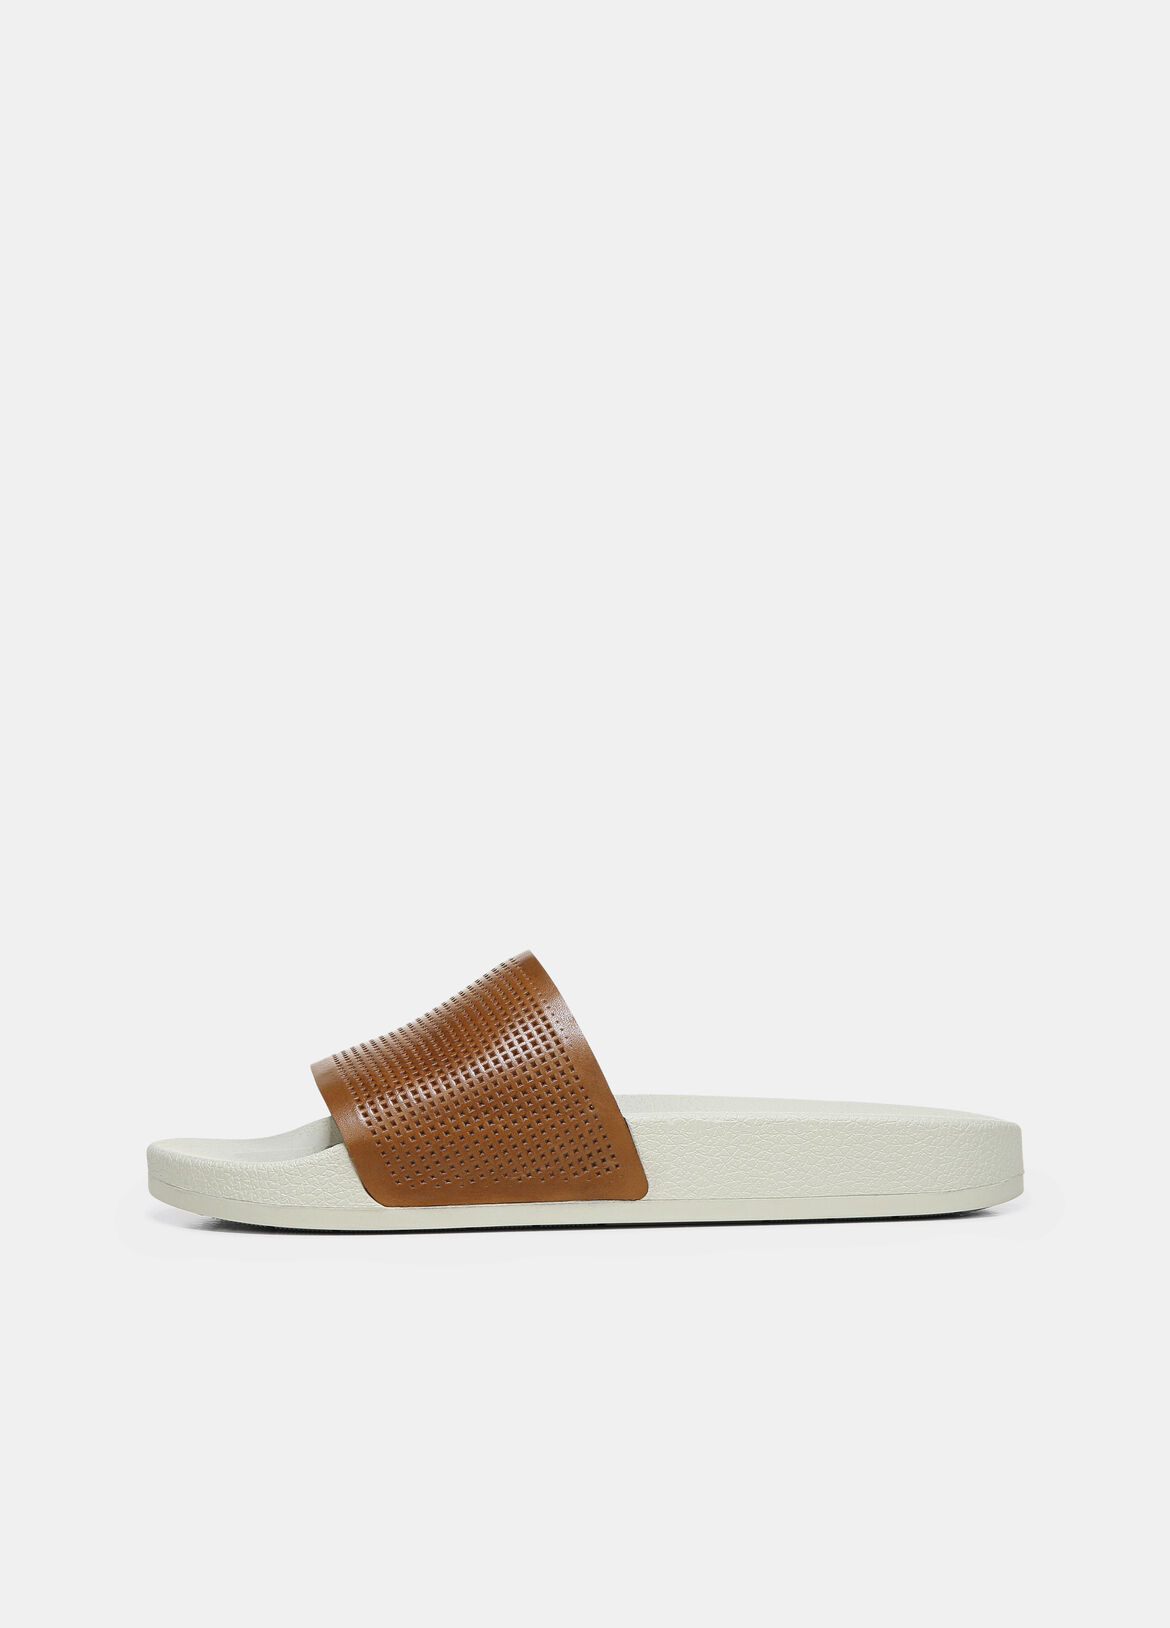 빈스 Vince Leather Watley-2 Sandal,luggage